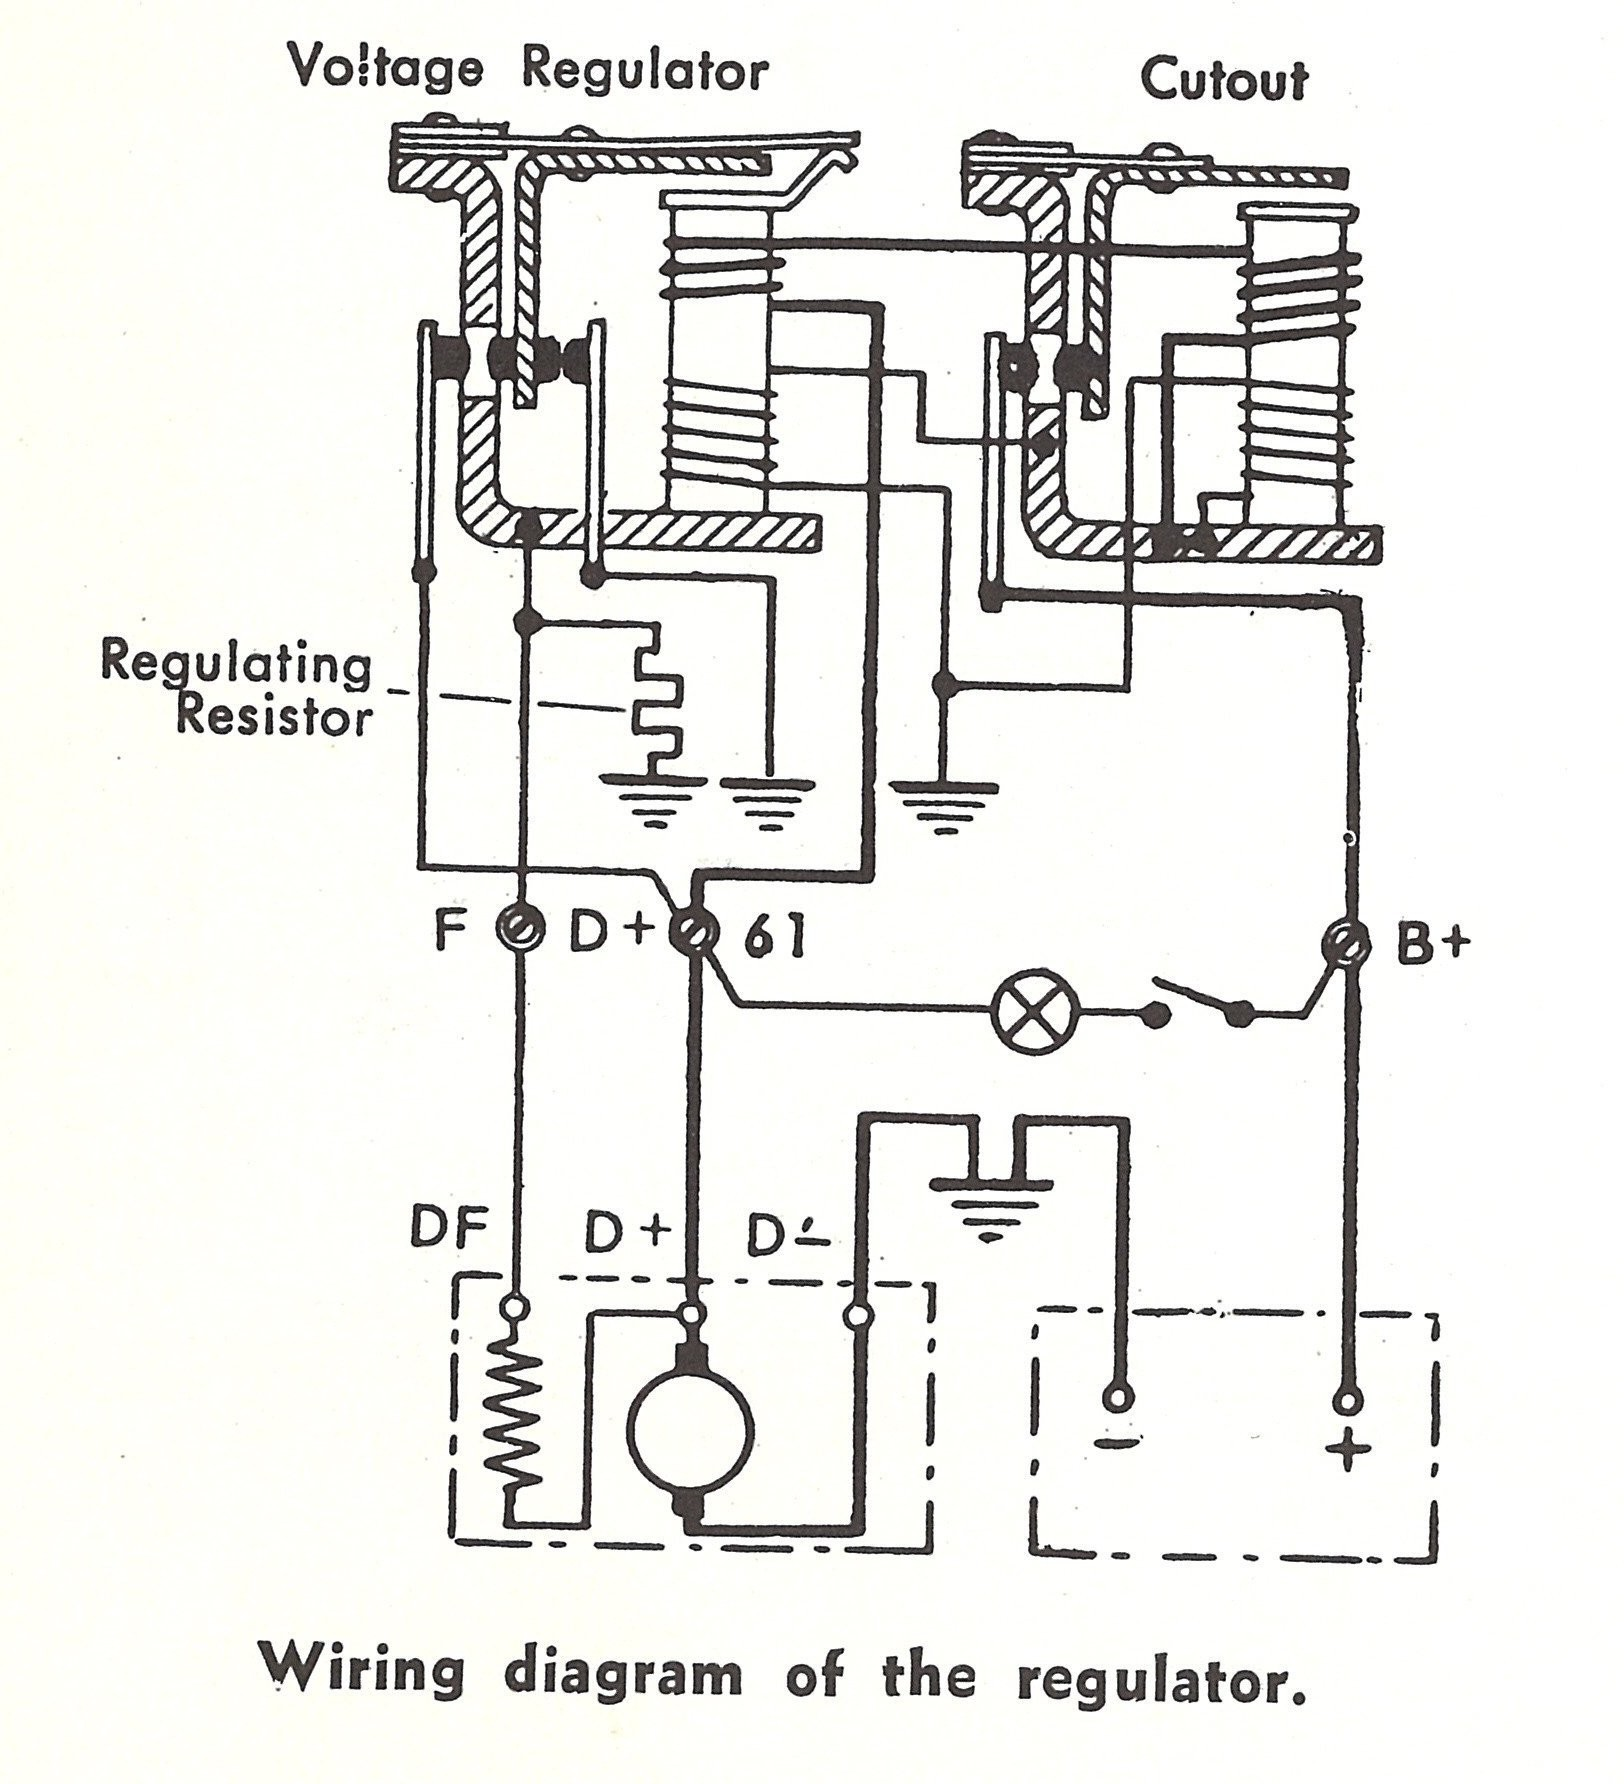 Kohler 10 Hp Wiring Diagram Best Electrical Circuit Command 18 Engine Voltage Regulator Library Rh 19 Codingcommunity De Ignition